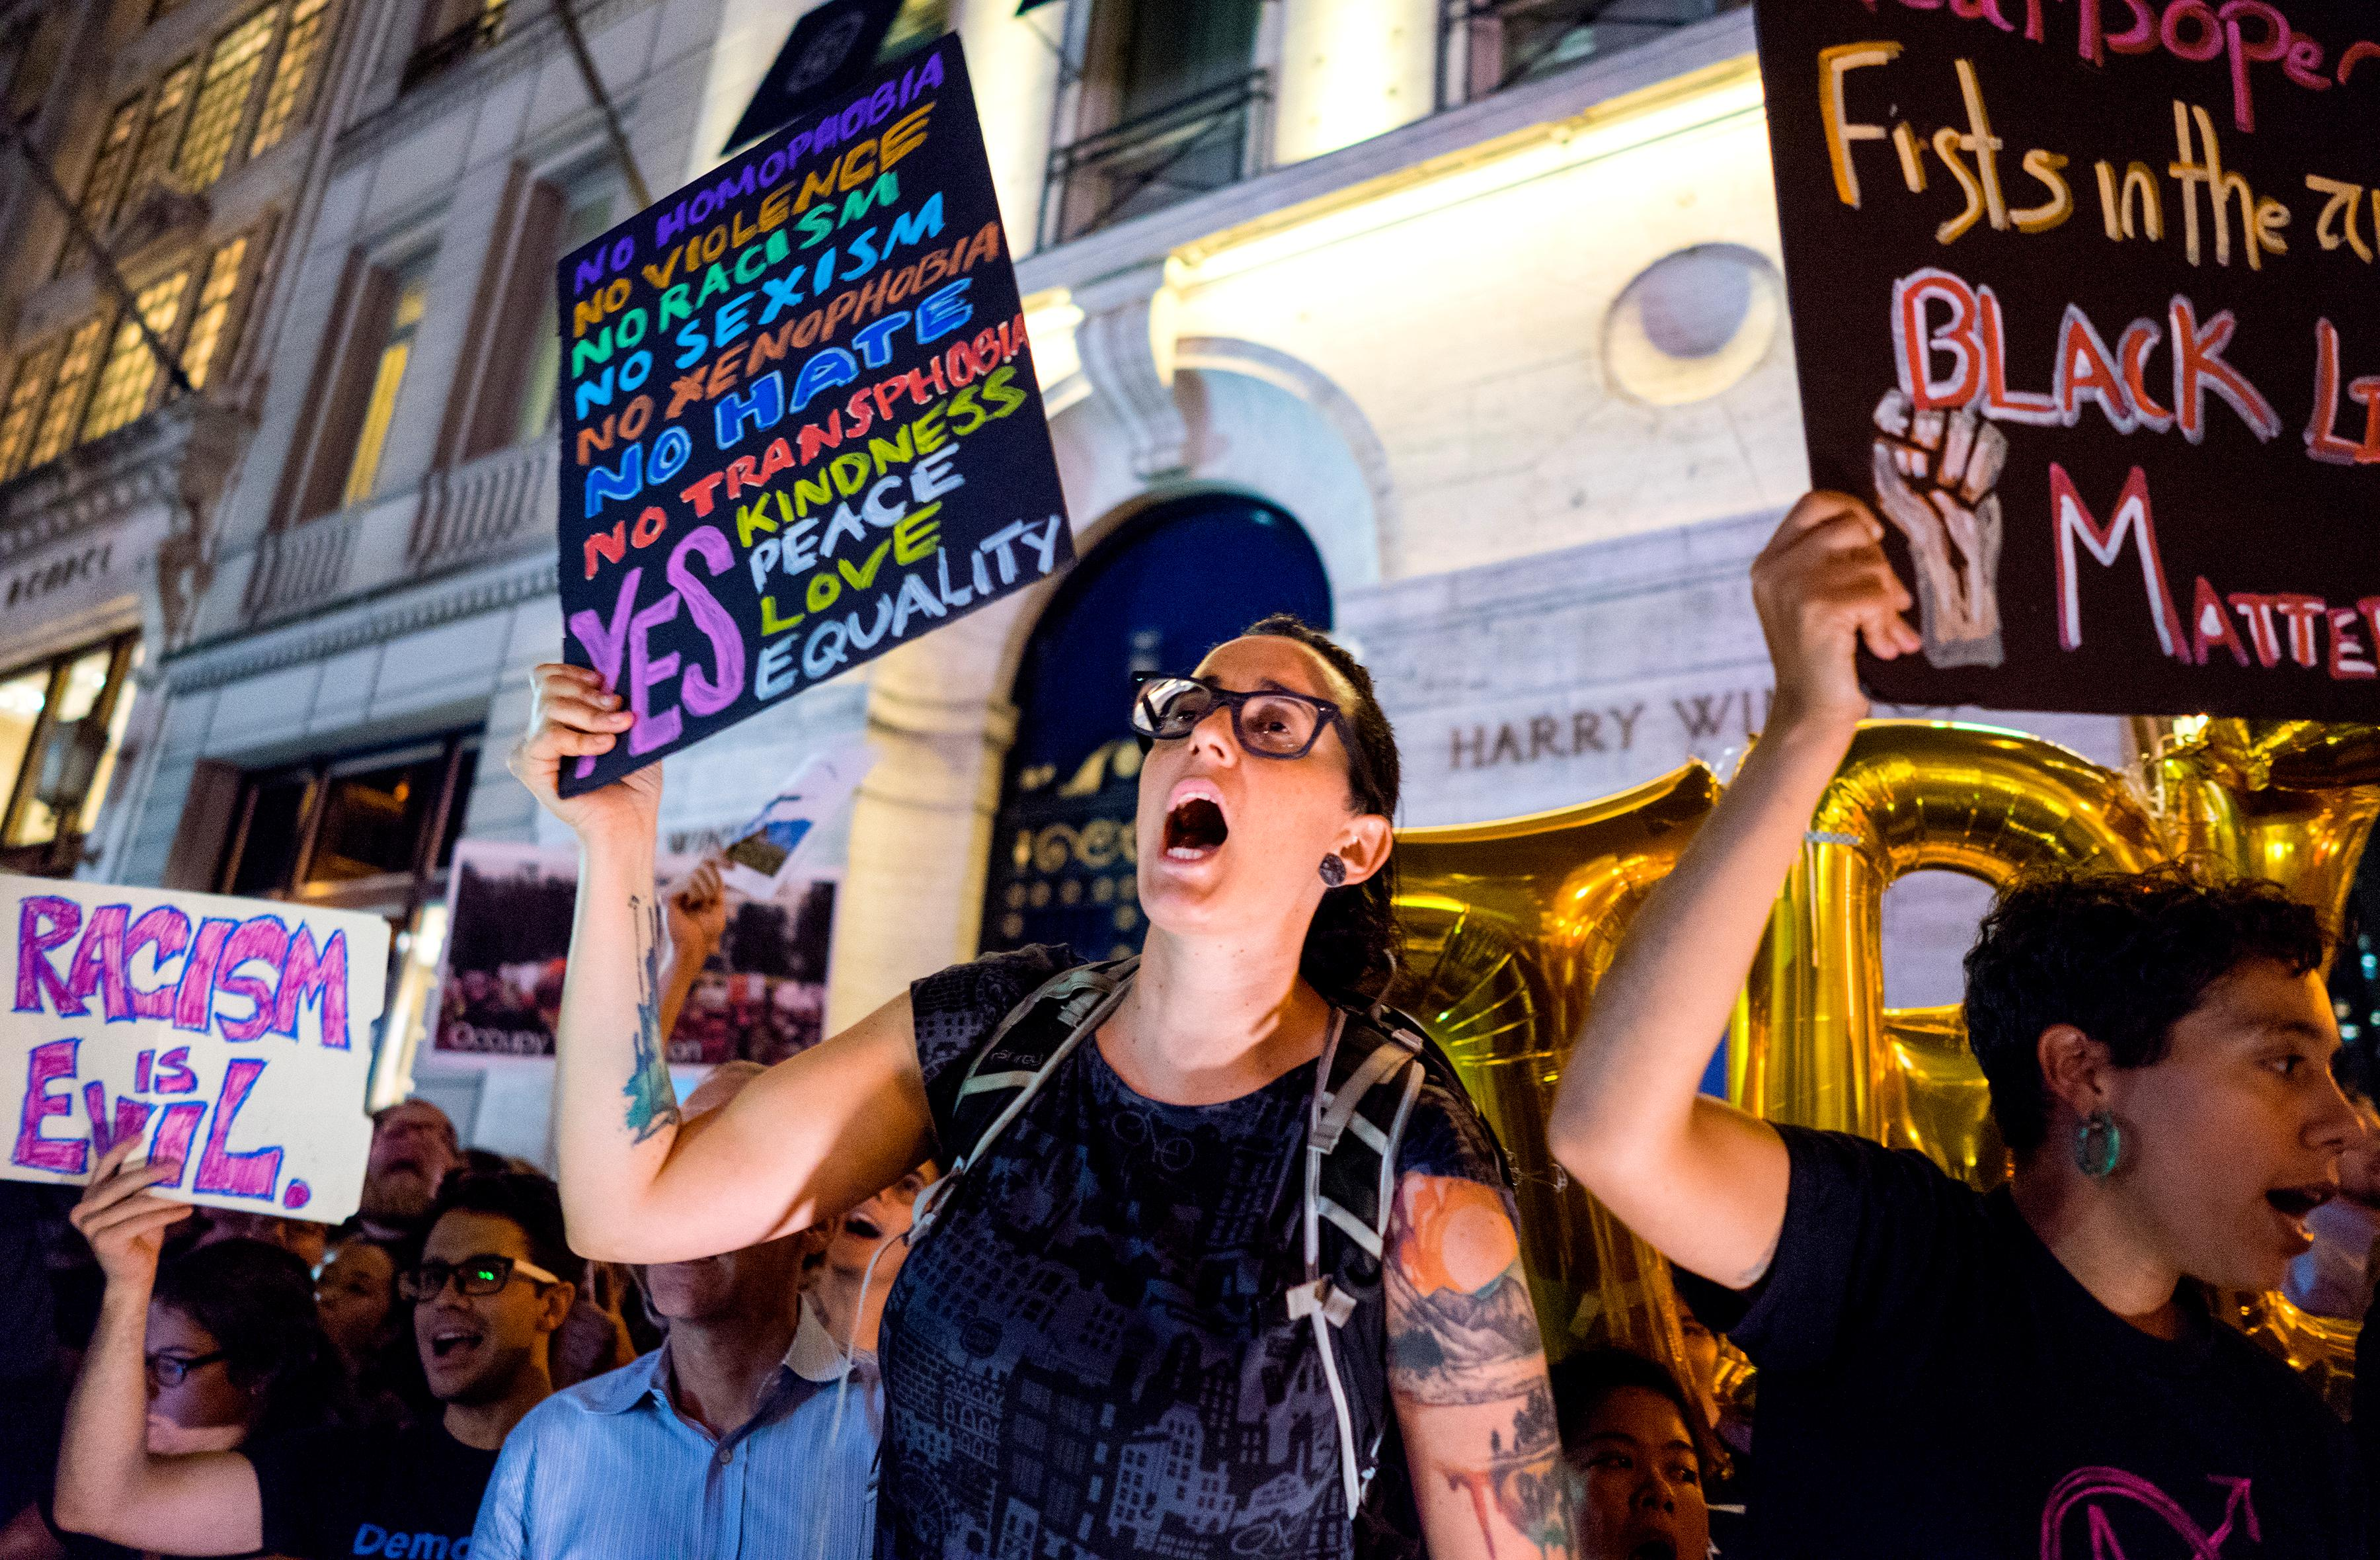 Protestors near Trump Tower react as President Donald Trump arrives, Monday, Aug. 14, 2017, in New York. (AP Photo/Craig Ruttle)